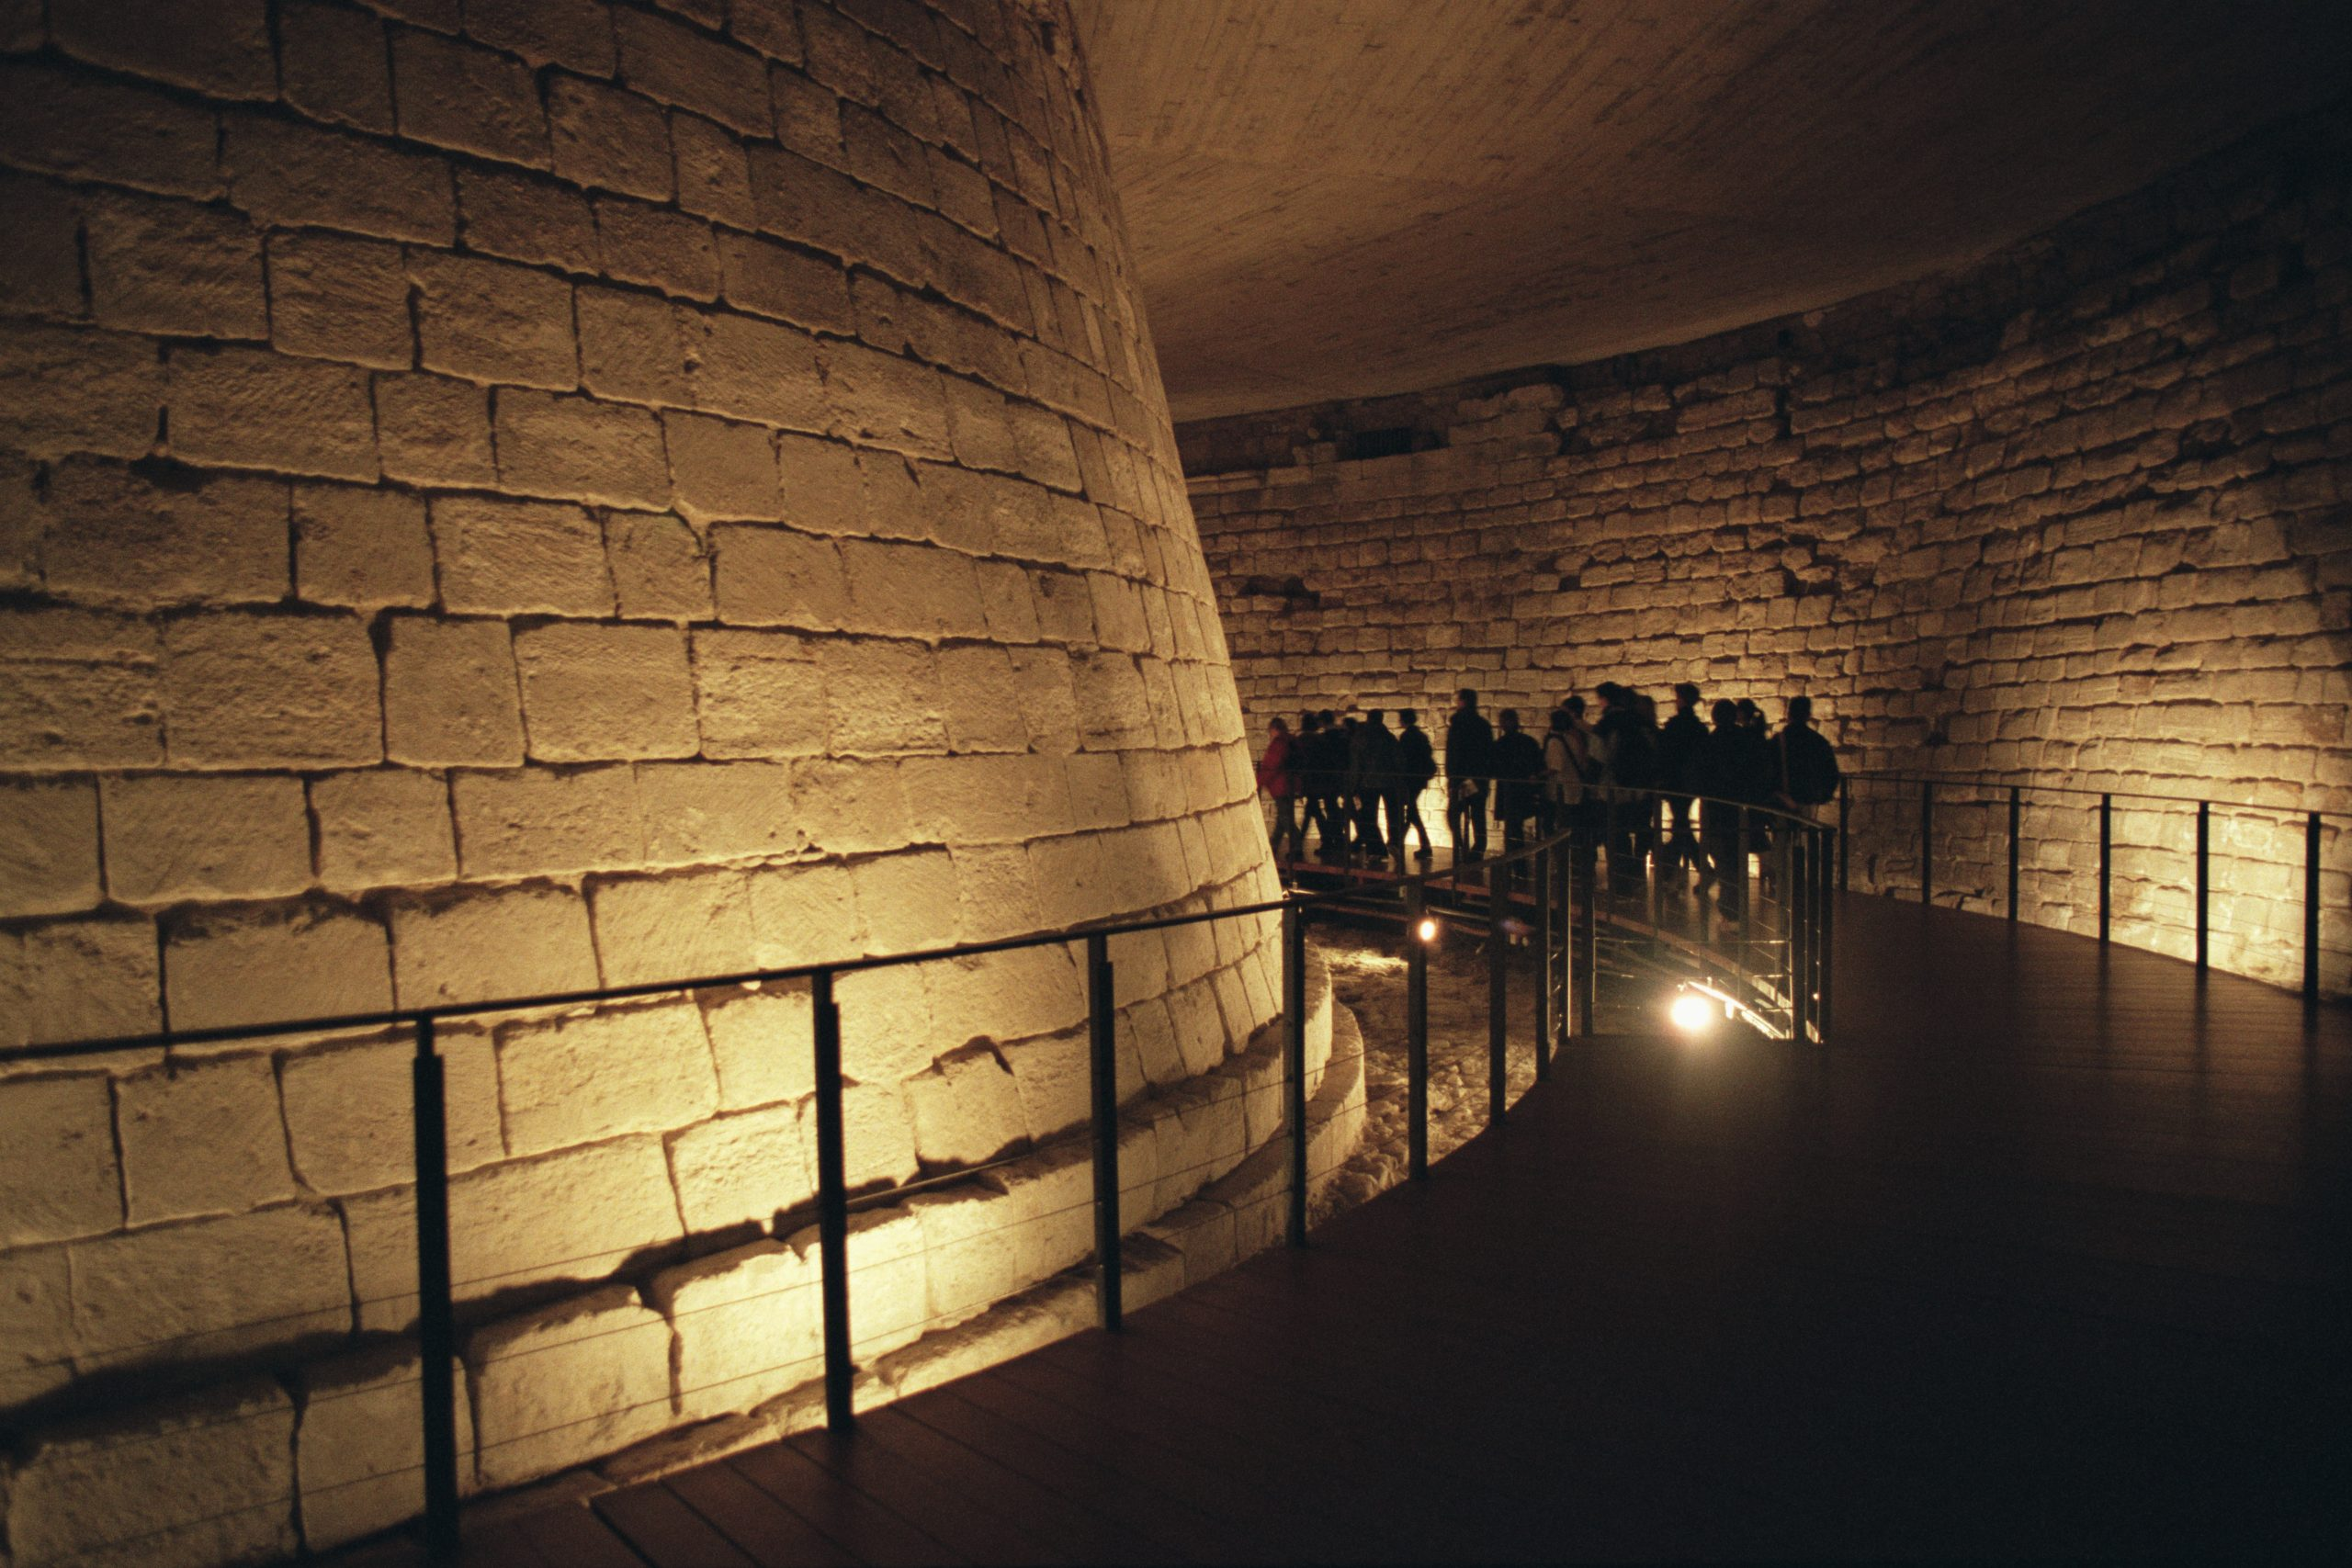 (Original Caption) The Medieval Louvre: The dungeon moat. (Photo by Bernard Annebicque/Sygma/Sygma via Getty Images)